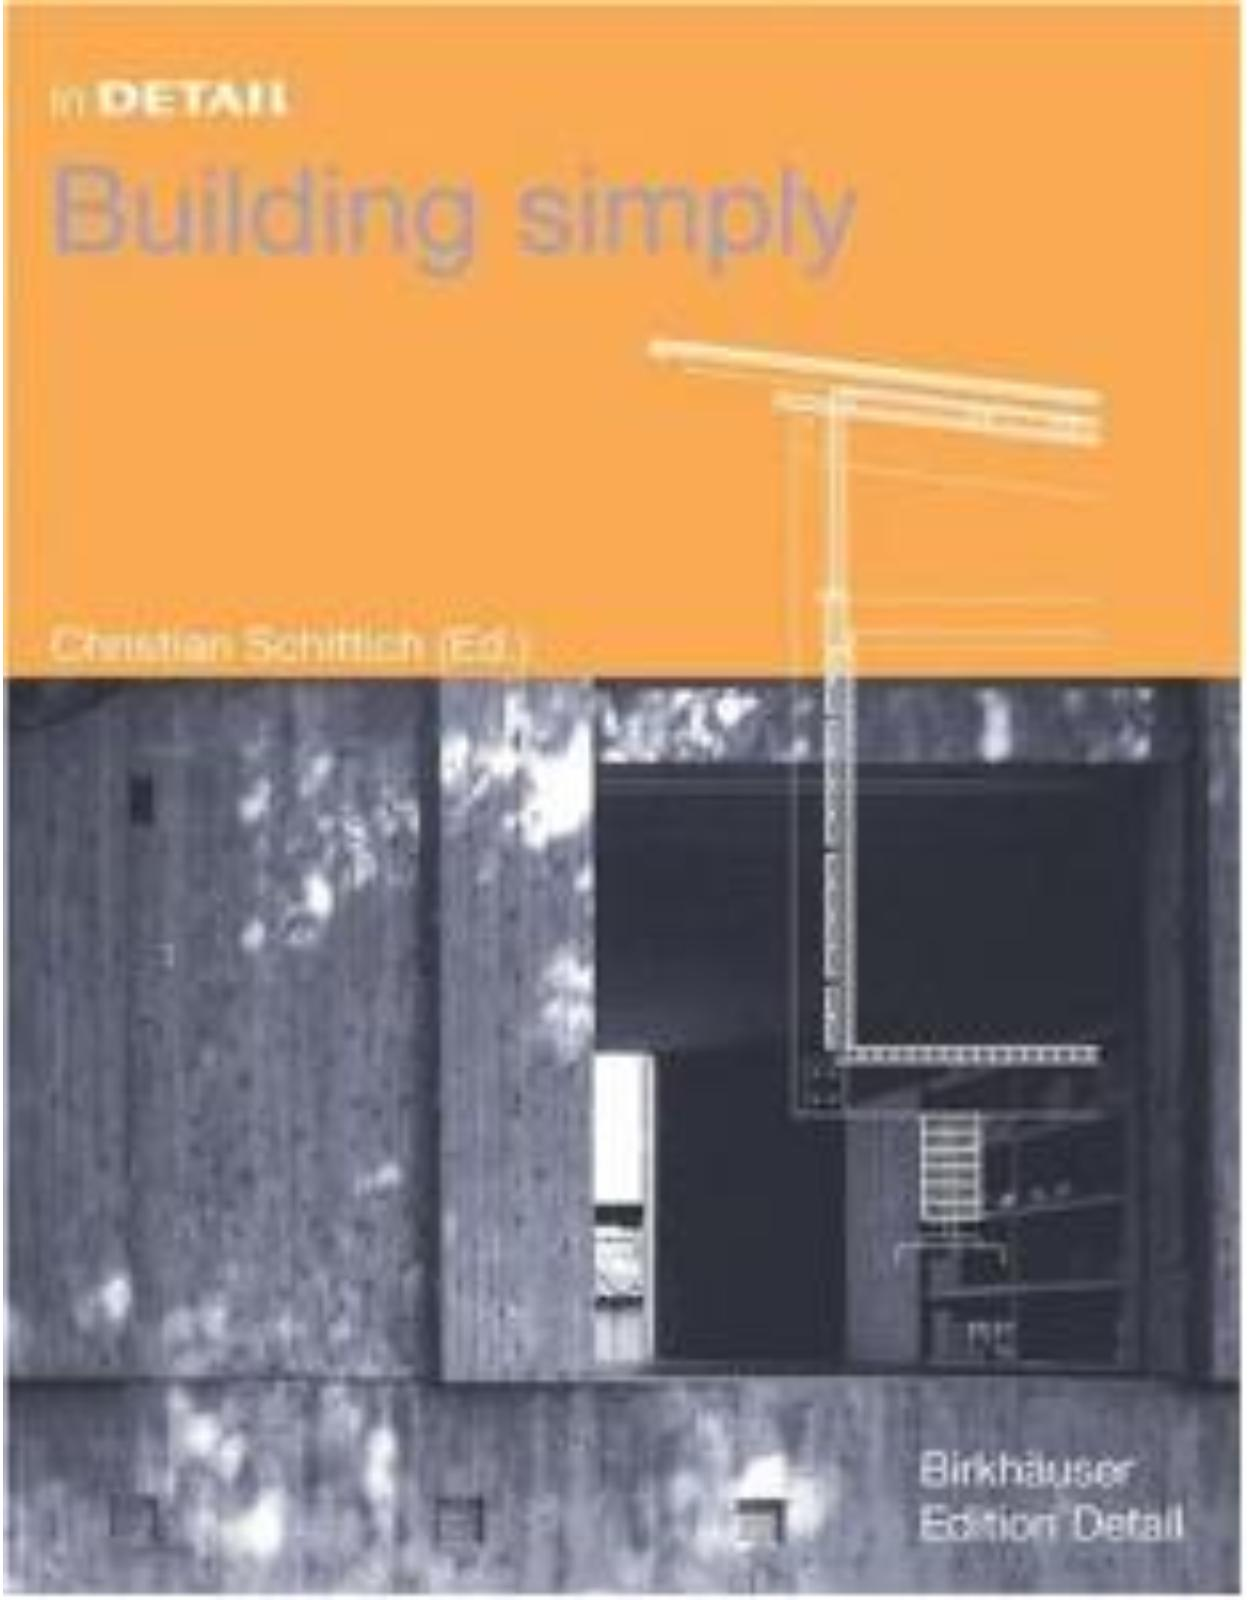 In Detail: Building Simply